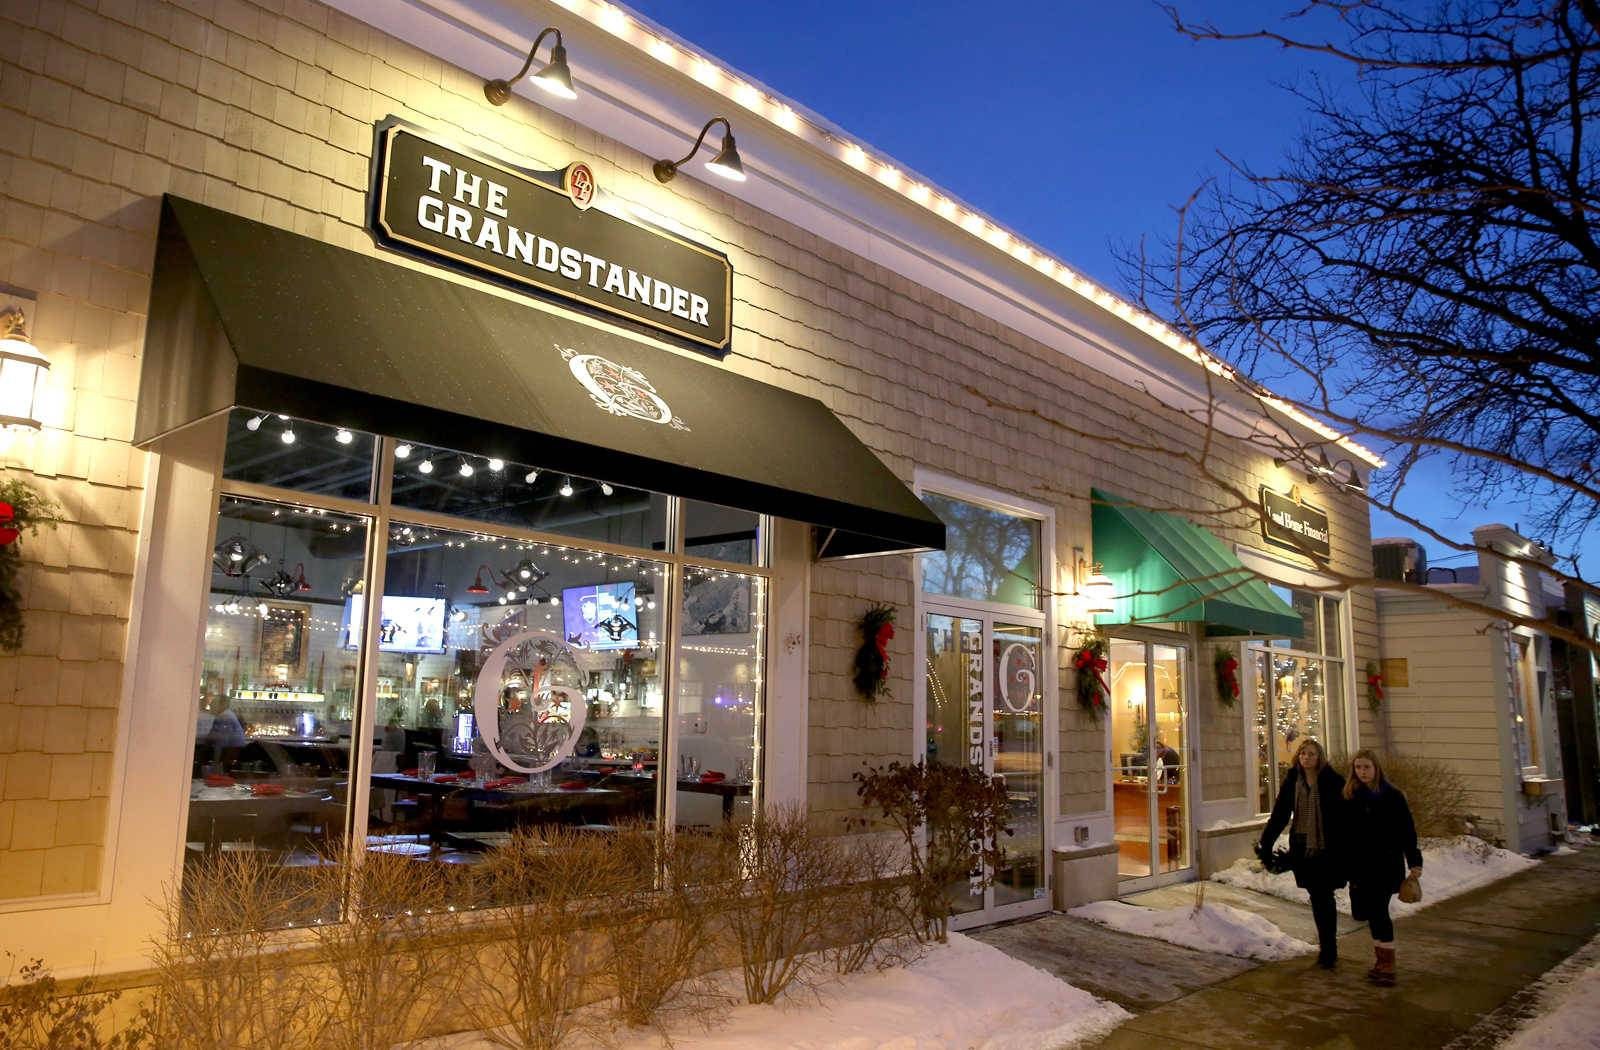 Geneva's Grandstander, which opened in late August, appeals to foodies and sports fans.